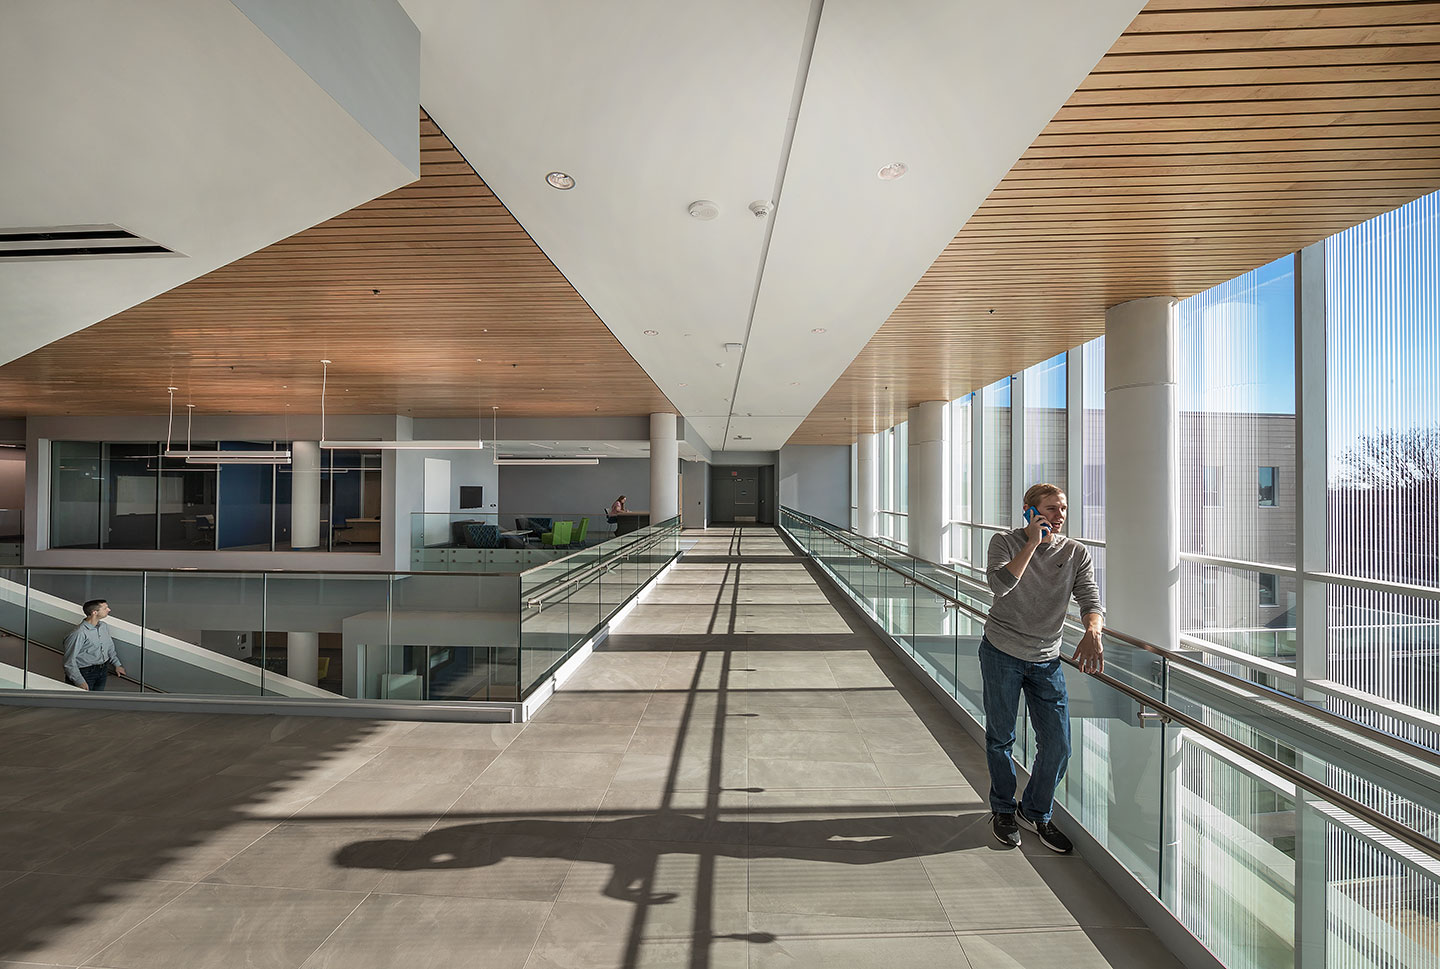 The building's interior soaks in natural daylight through its transparent south façade and sun control systems. A 3D sun diagram helps the owner identify various strategies for solar control on the west, south, and east sides.